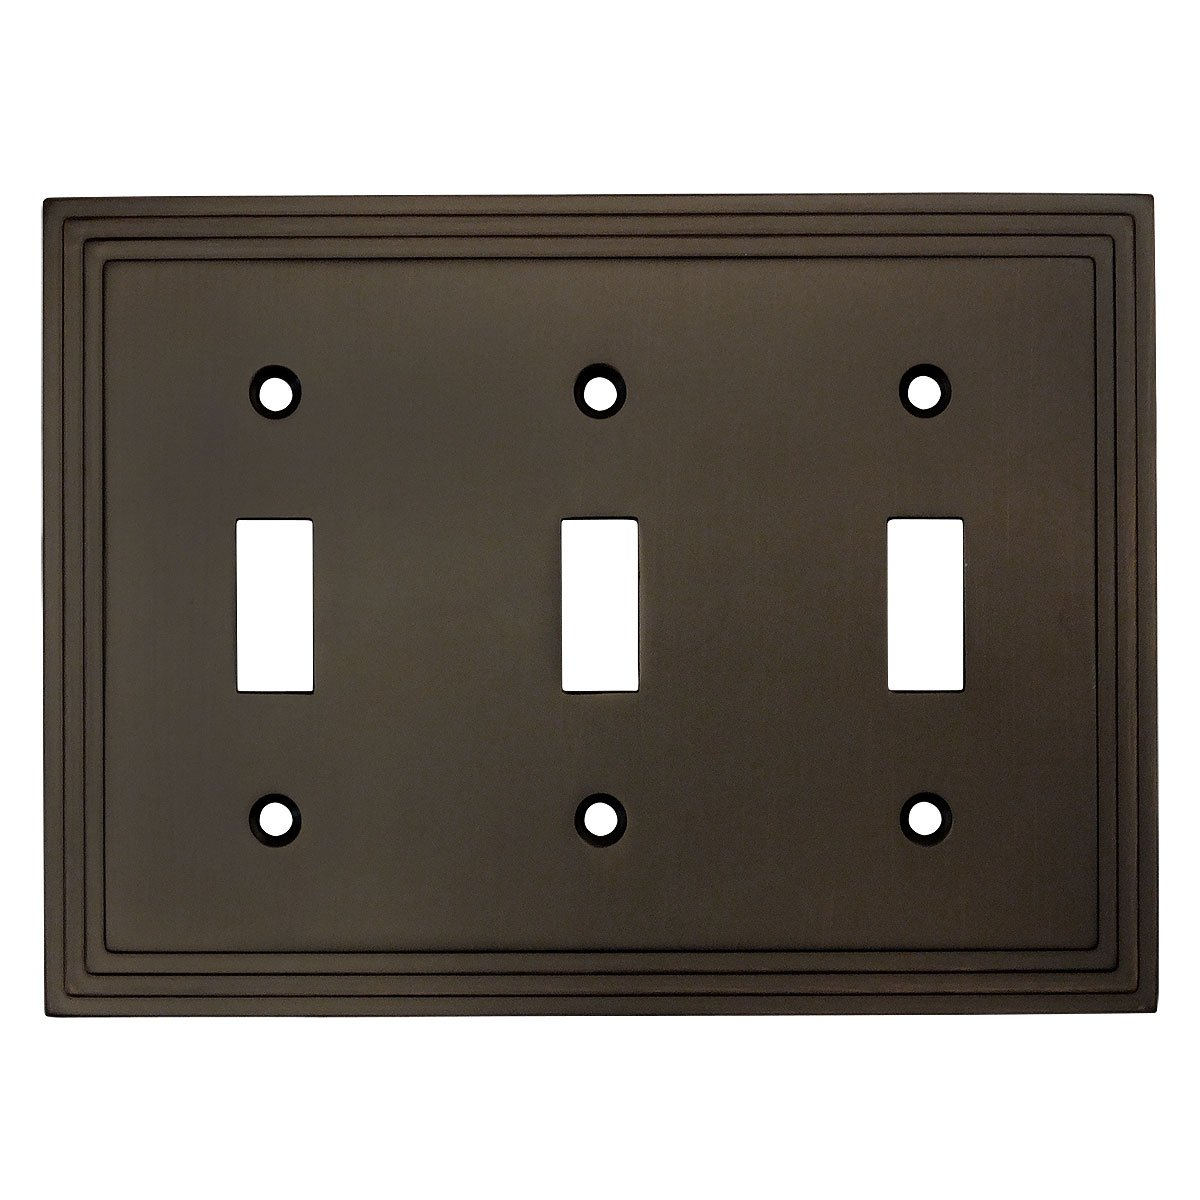 Cosmas 25037-ORB Oil Rubbed Bronze Triple Toggle Switchplate Wall Switch Plate Cover